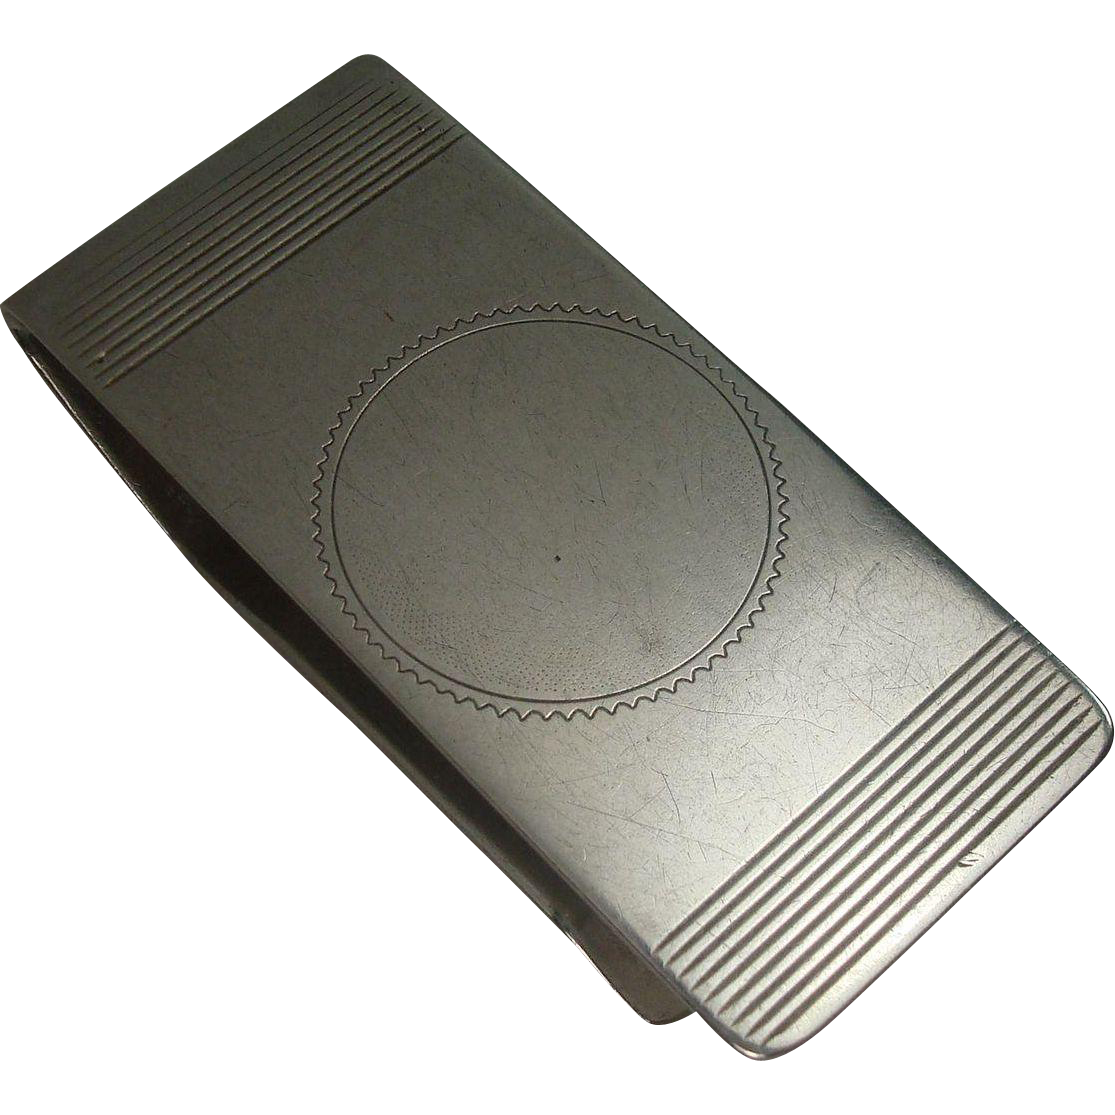 Admark Sterling Art Deco Money Clip